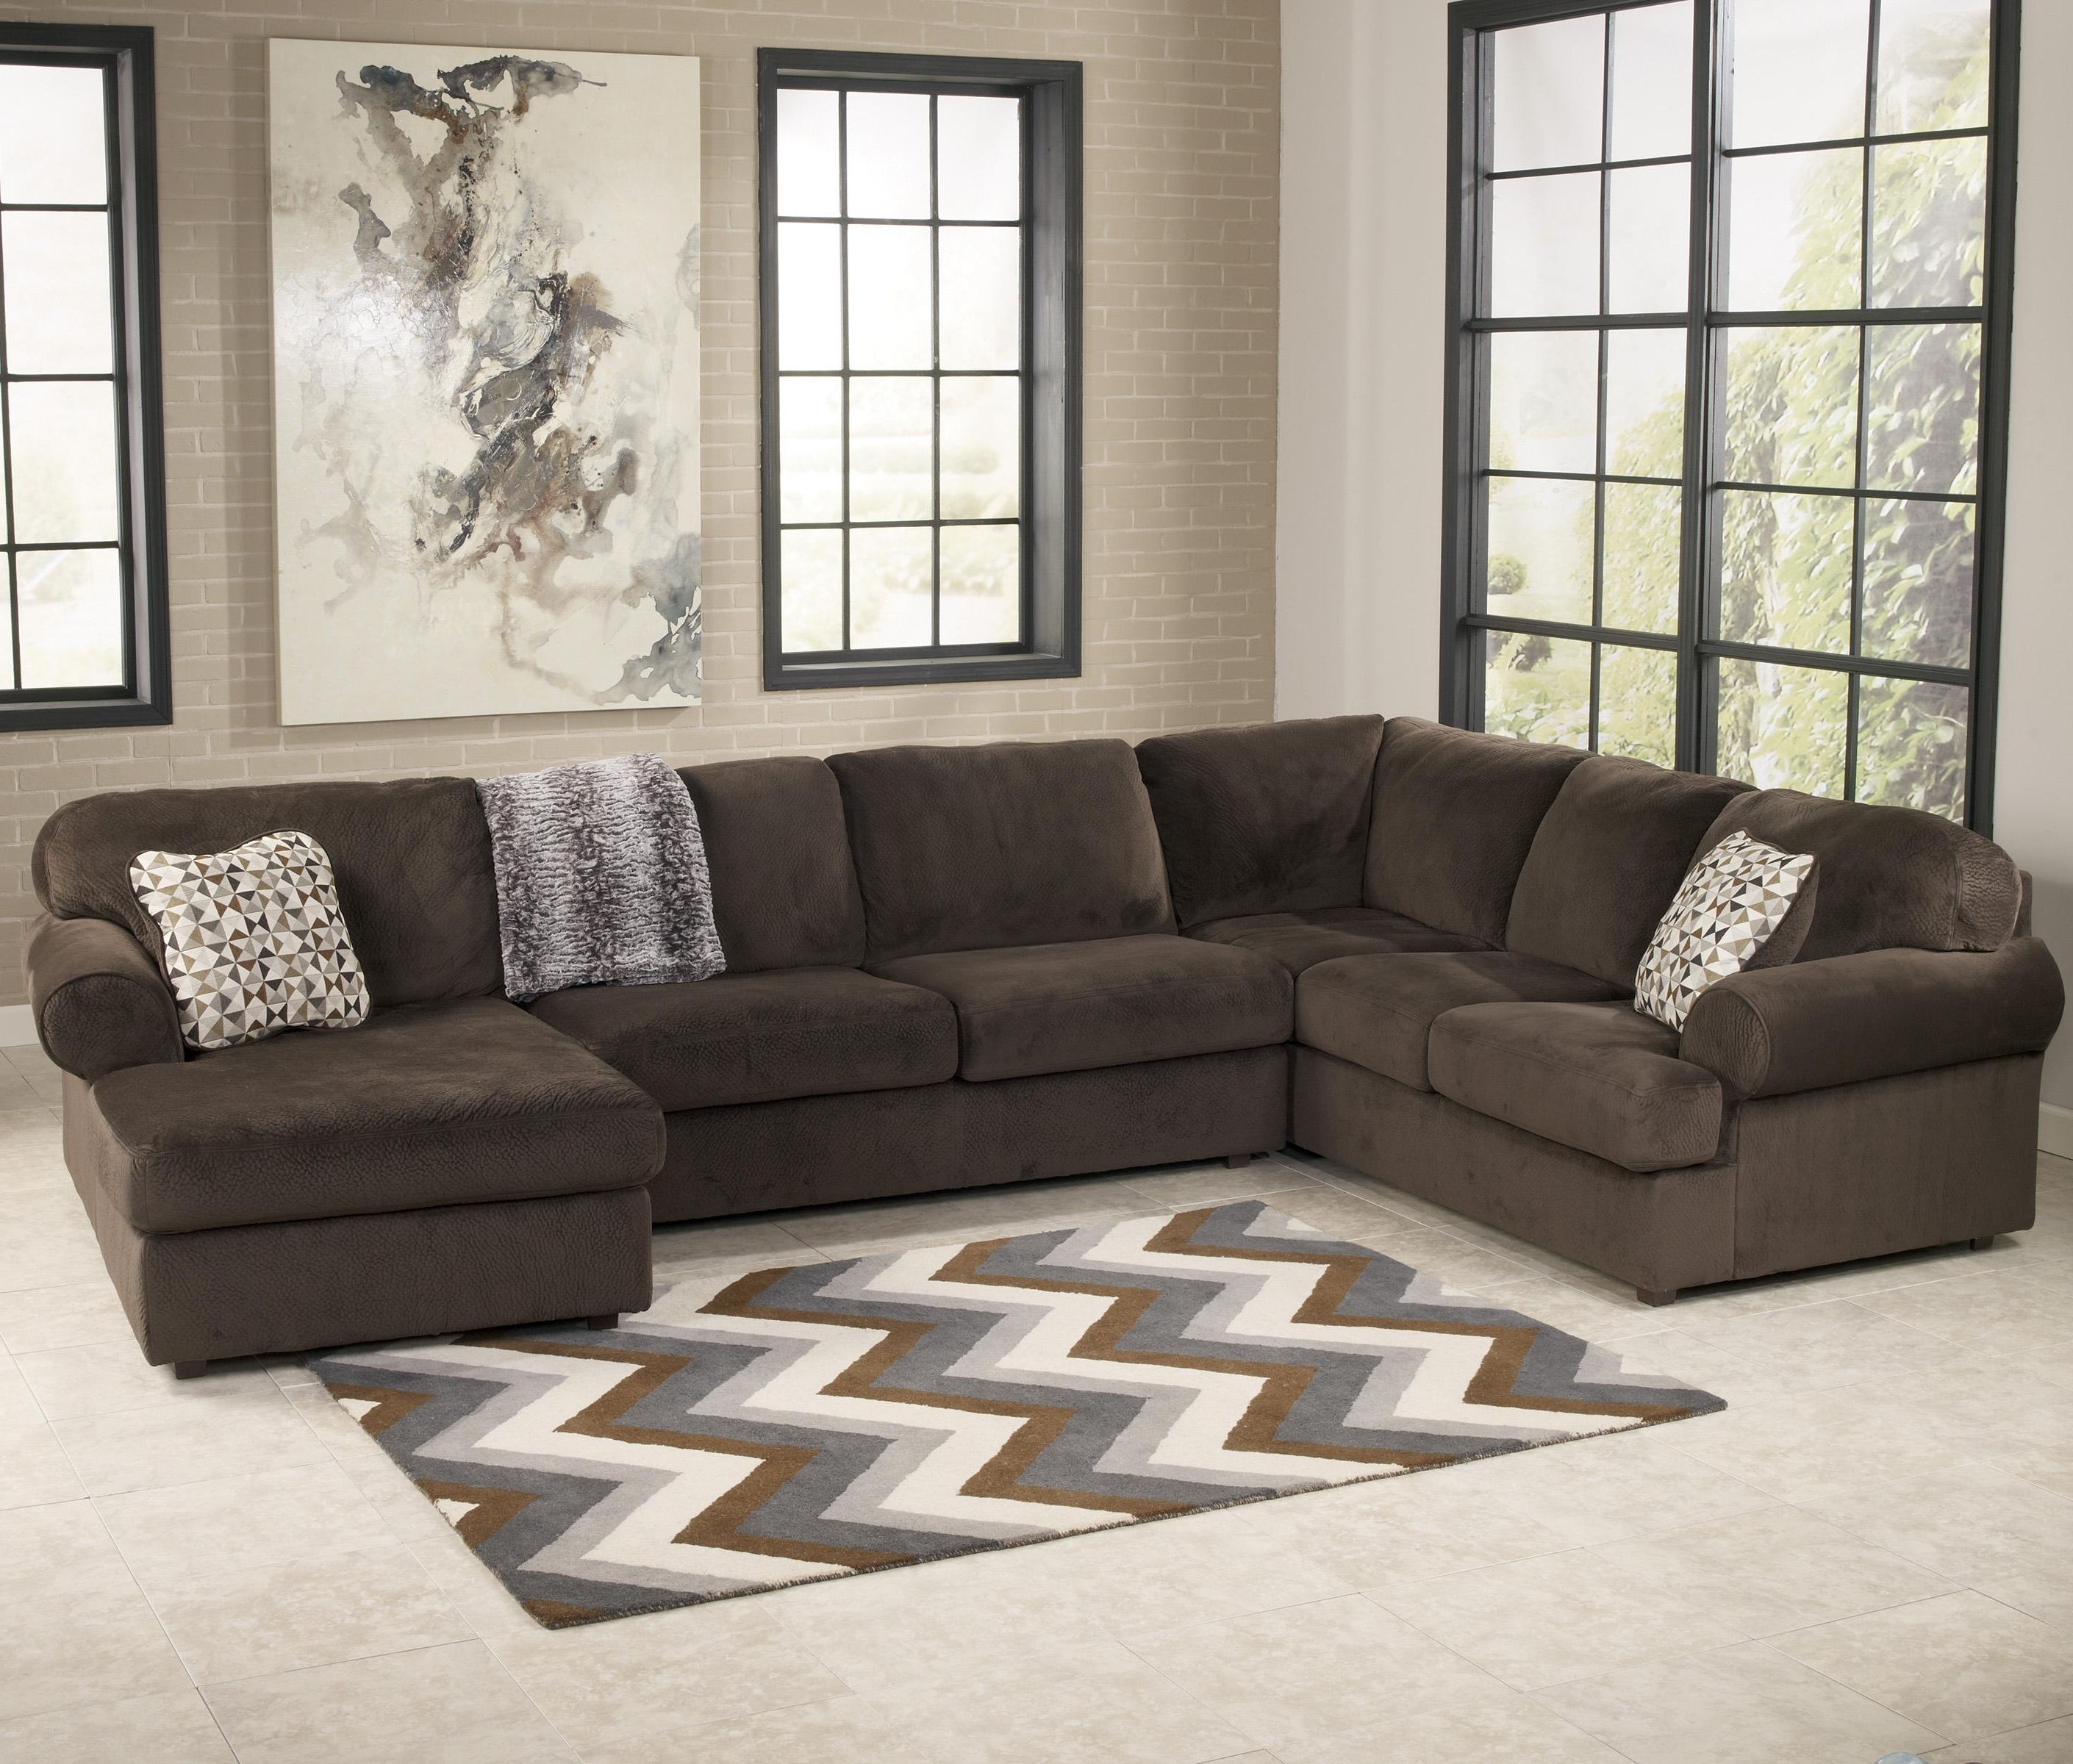 2018 Sectional Sofas At Ashley Furniture Regarding Sofa : Ashley Jessa Place Sectional Sofa Ashley Sectional Sofa (View 13 of 20)